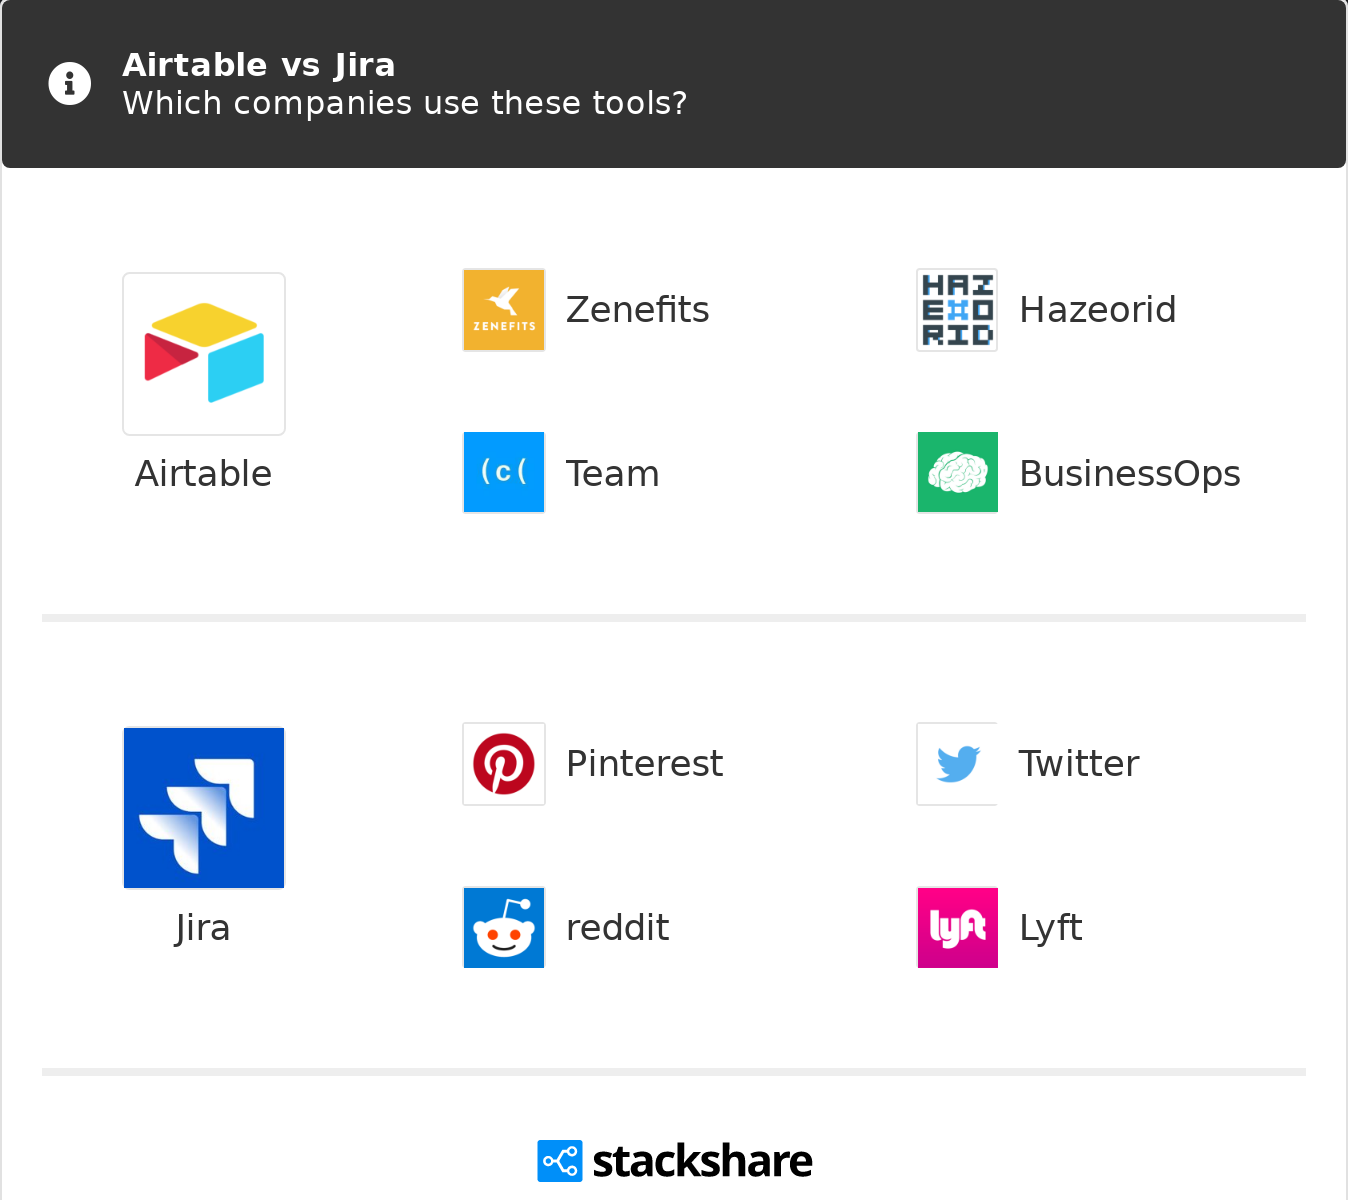 Airtable Vs Jira airtable vs jira   what are the differences?